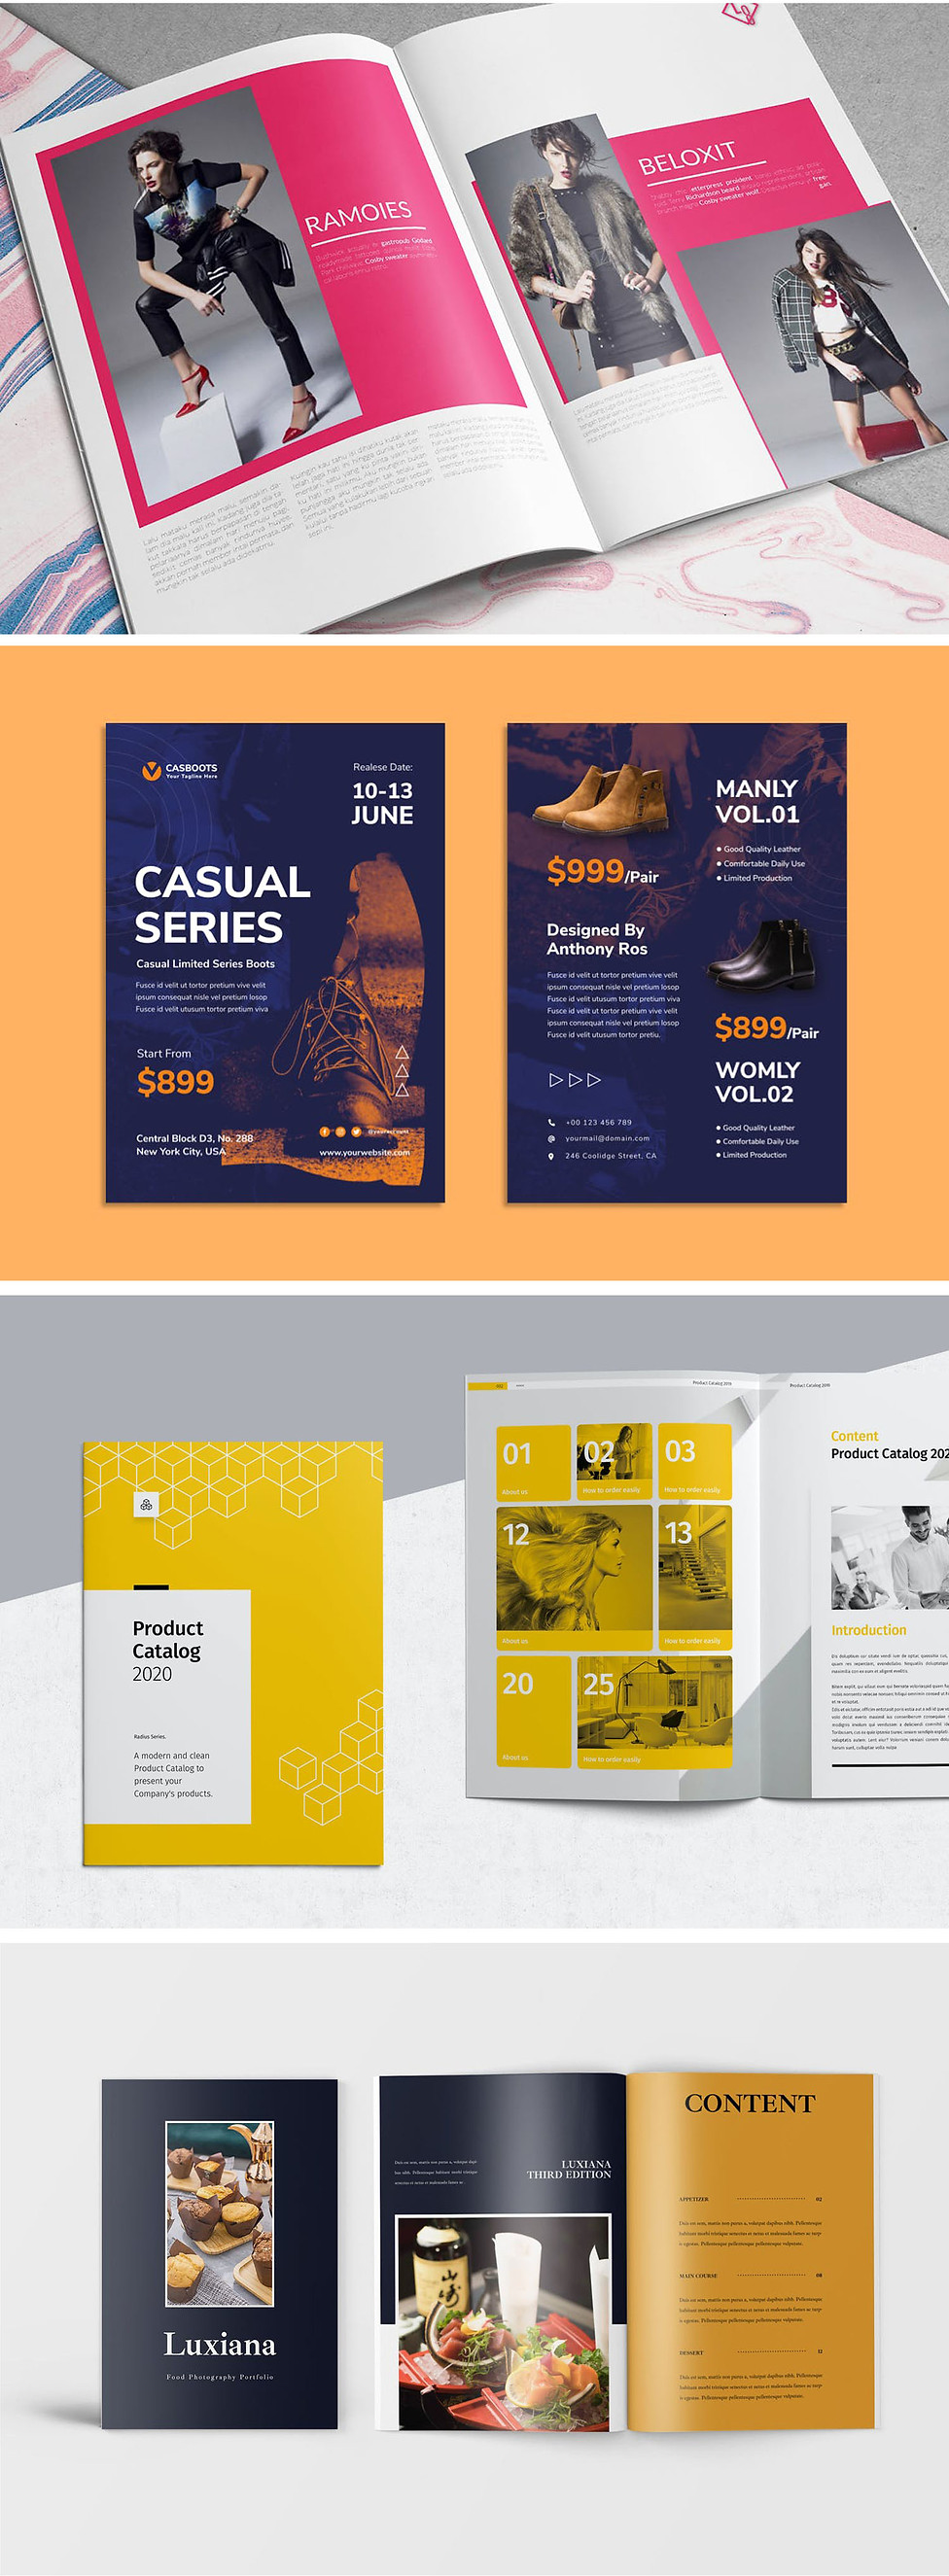 GraphicDesign_Catalogues.jpg